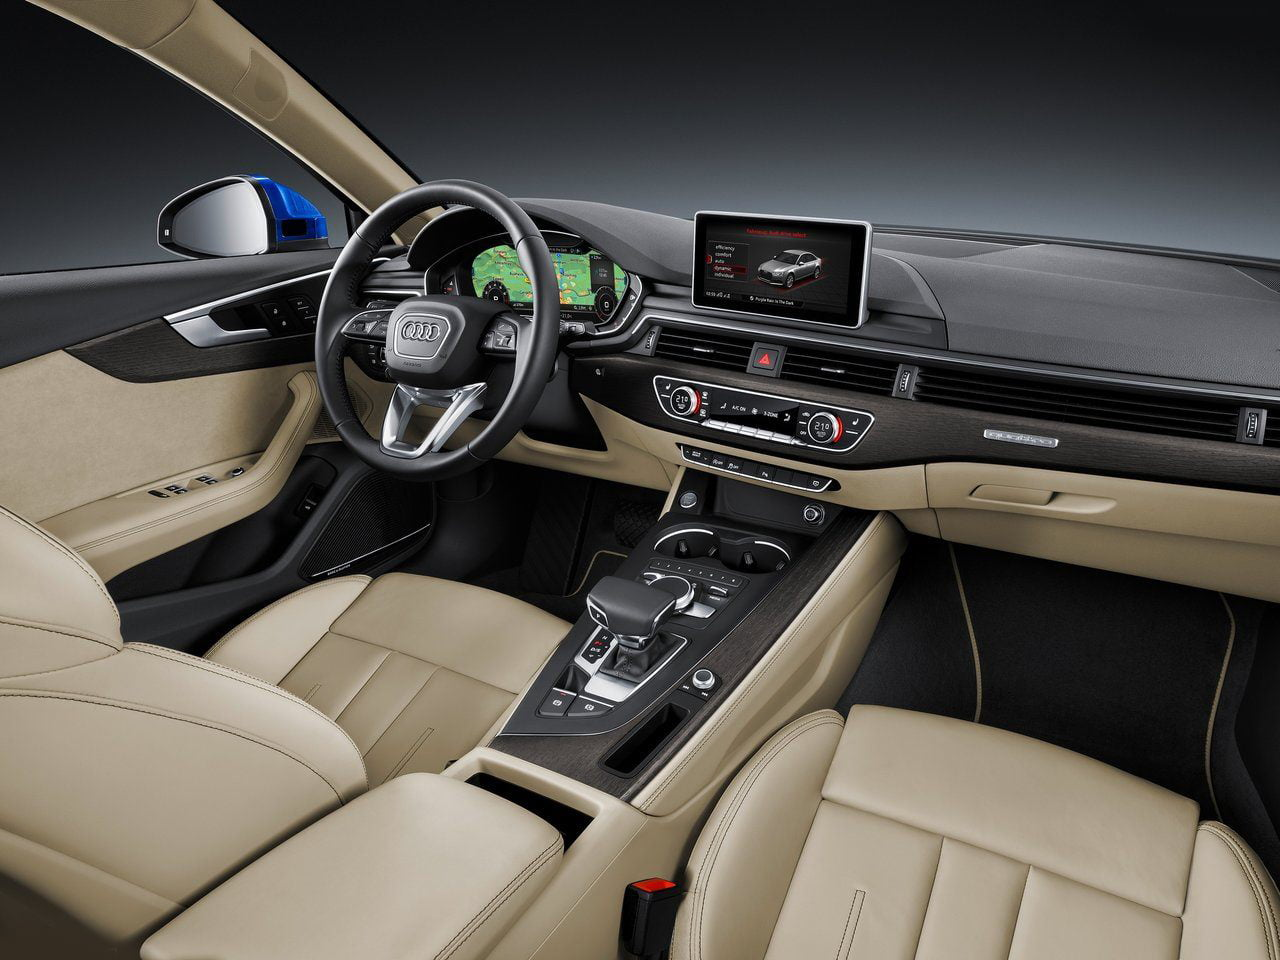 New Model Audi A India Price Lakhs Specifications Features - Audi new model 2016